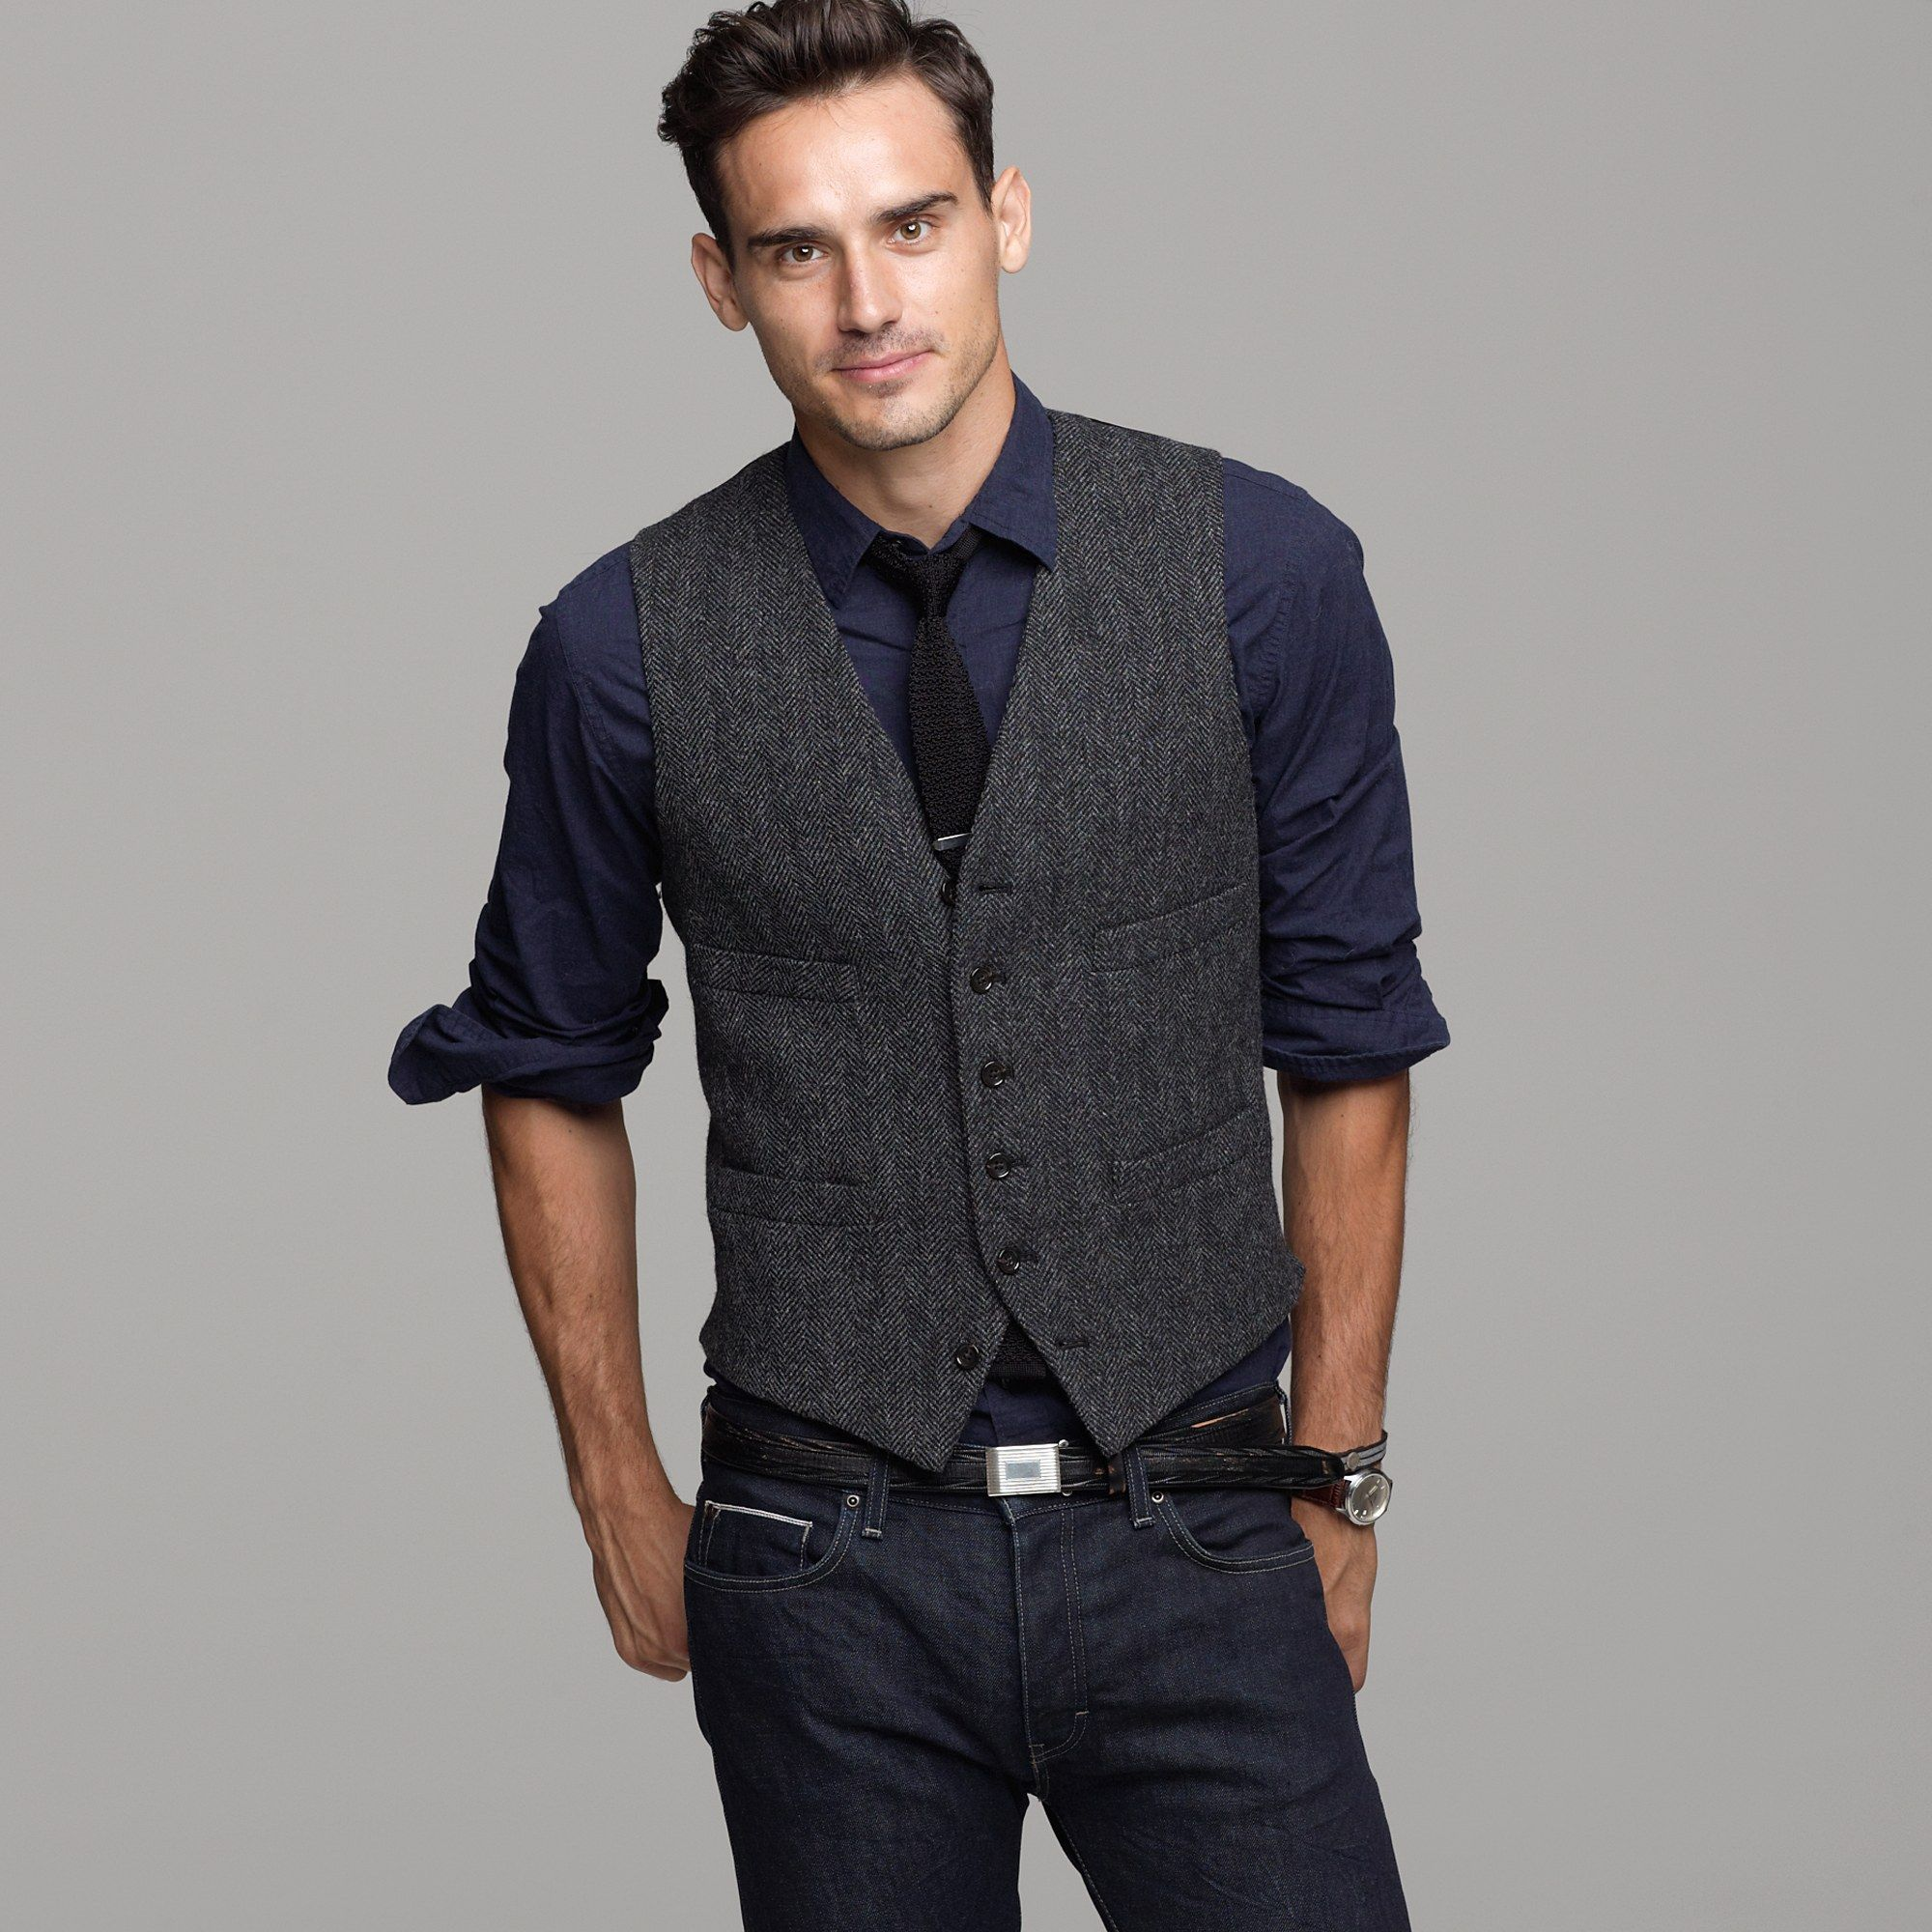 7294b8cc181 J.crew Buckley Herringbone Vest in Gray for Men (charcoal)